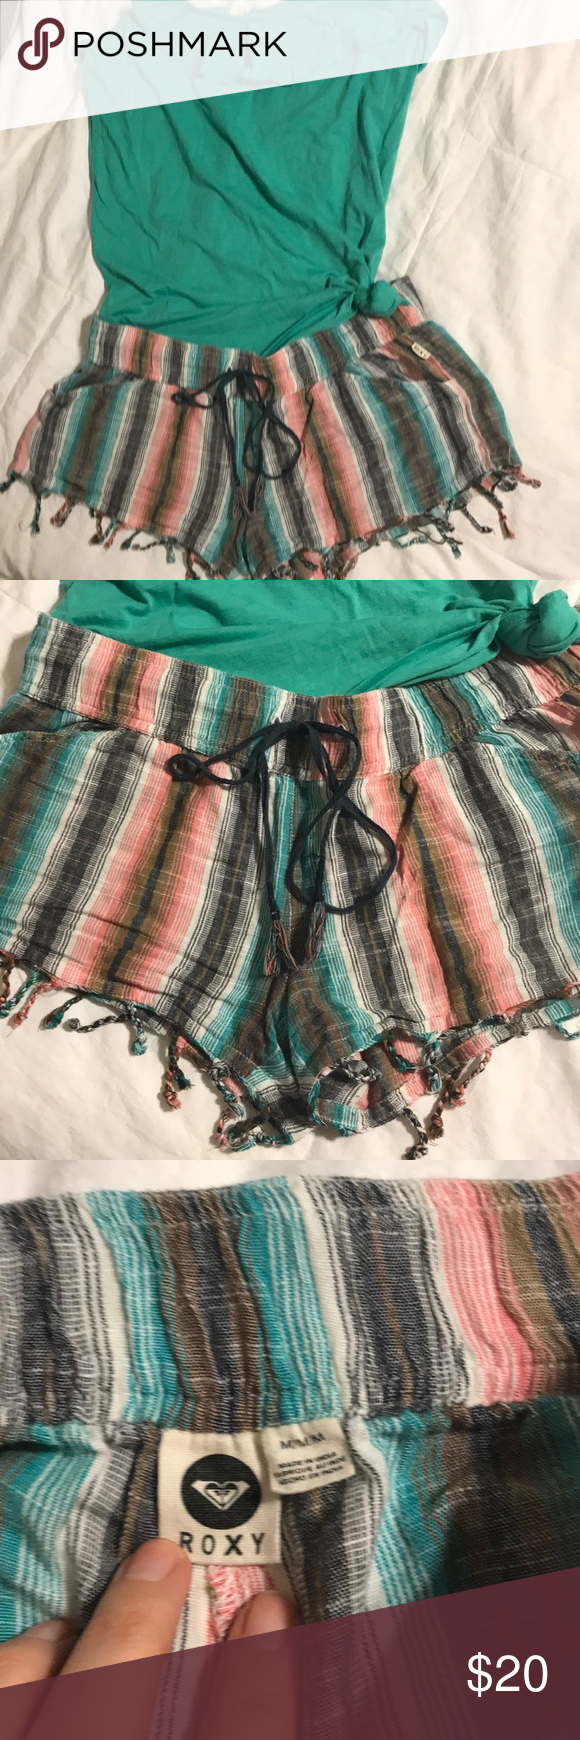 Super RARE cute Roxy shorts! These are rare! I got them at a boutique in austin tx that only buys 40 of each item. They are so cute and I love them and hate to part with them but they are just too small for me now :( Has been worn a few times but have so much life and no signs of pulling at all! They are 100% cotton but have a linen feel and look to them! Shorts